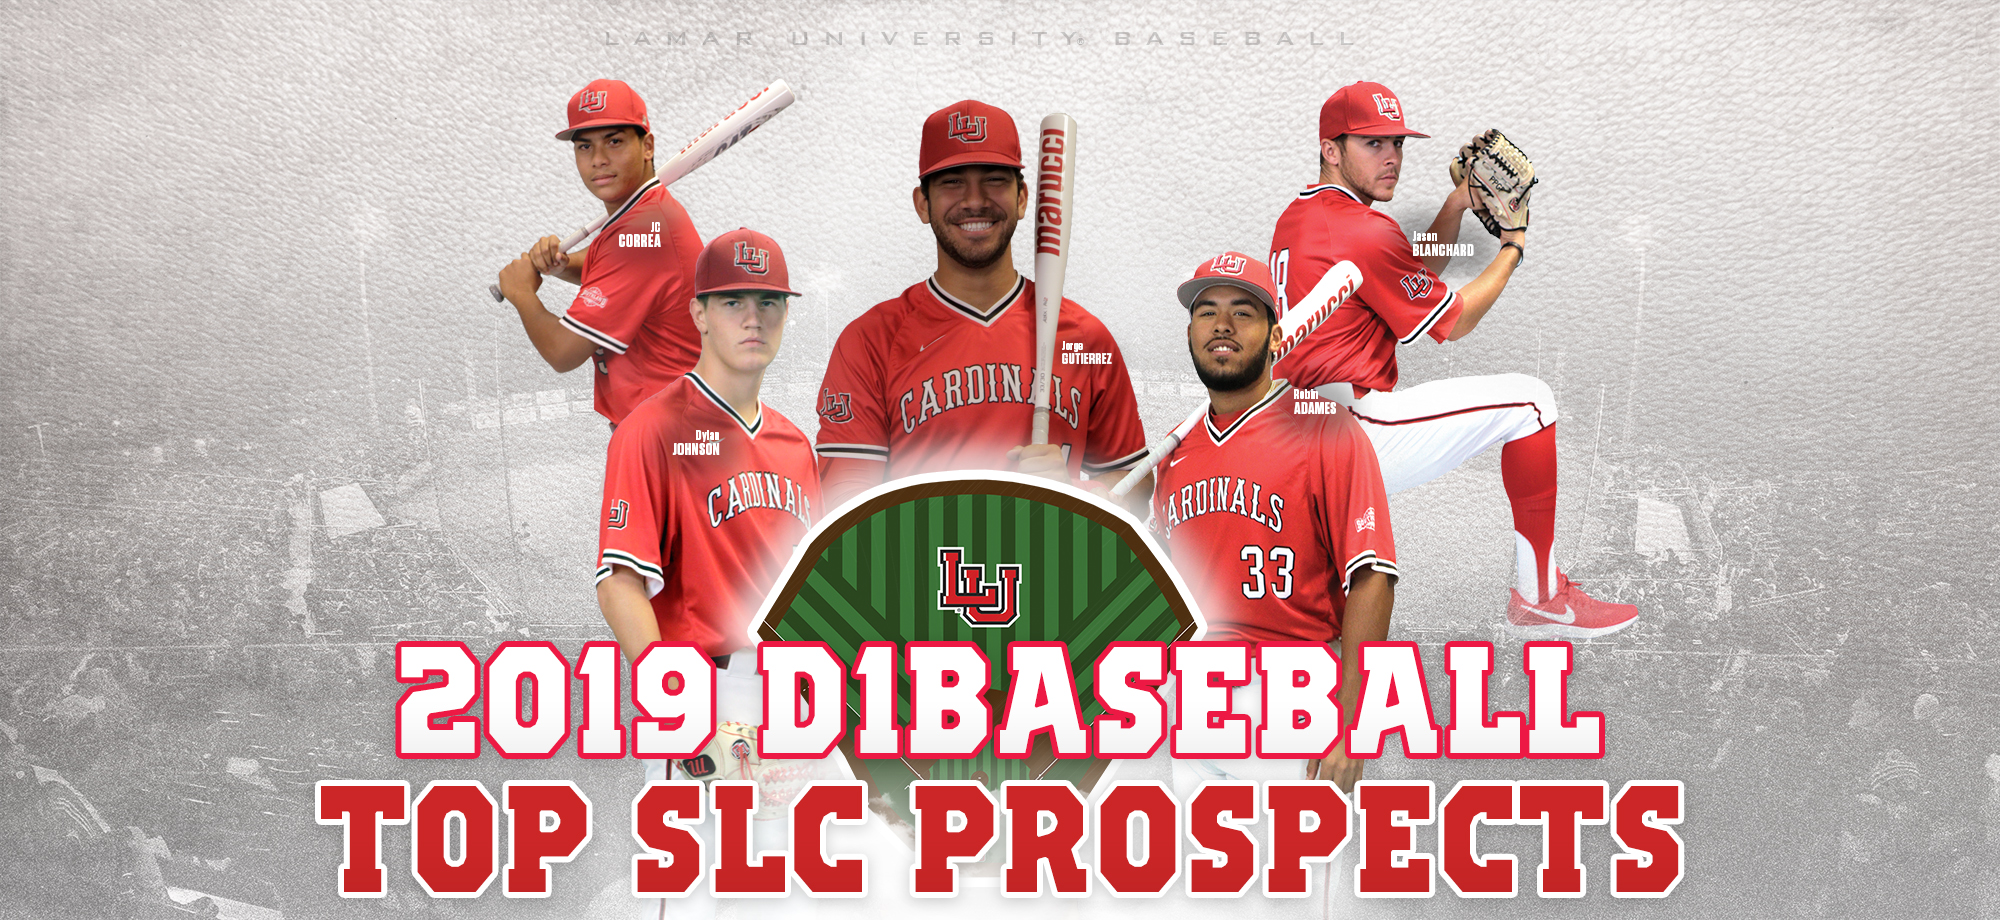 Five Cards Honored By D1baseball Lamar University Athletics